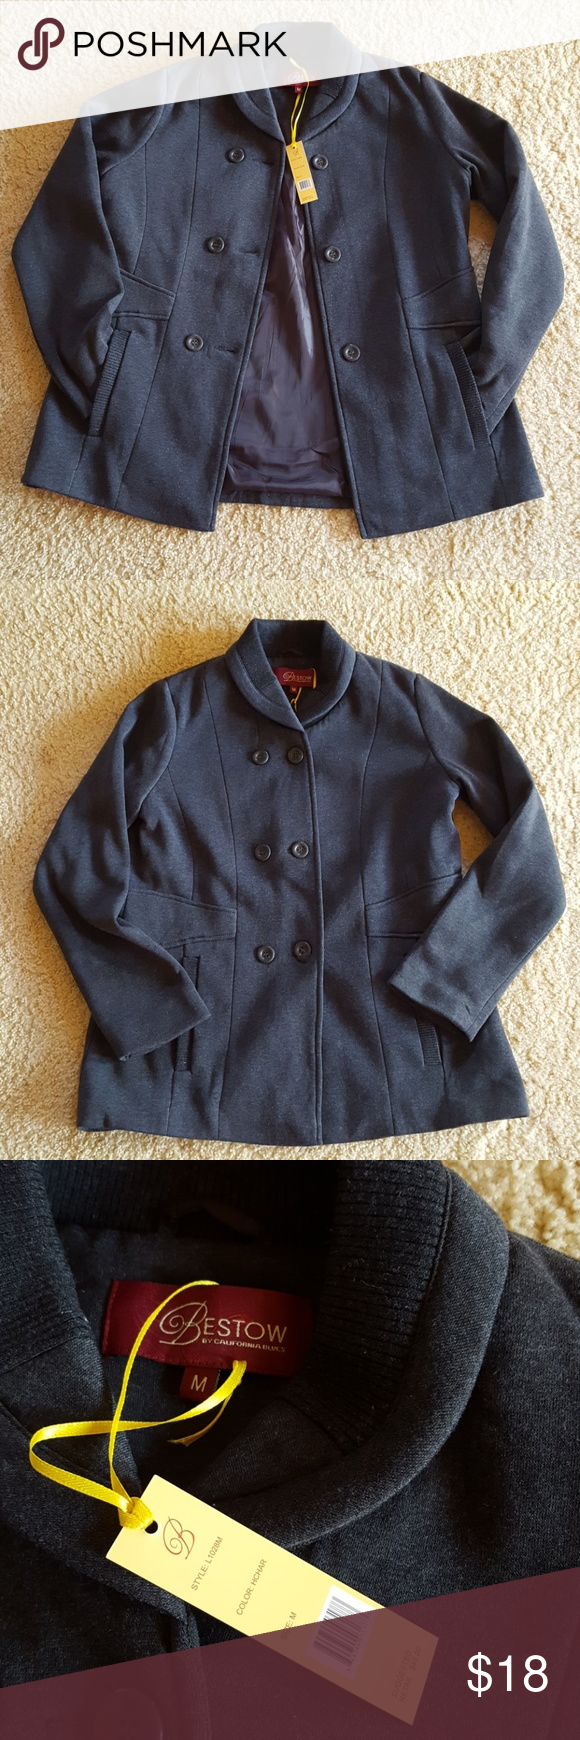 Bestow By California Blues Outerwear Bestow By California Blues Outerwear Jacket Coat It Is Very Warm And Comfortable D Blue Outerwear Fashion Clothes Design [ 1740 x 580 Pixel ]